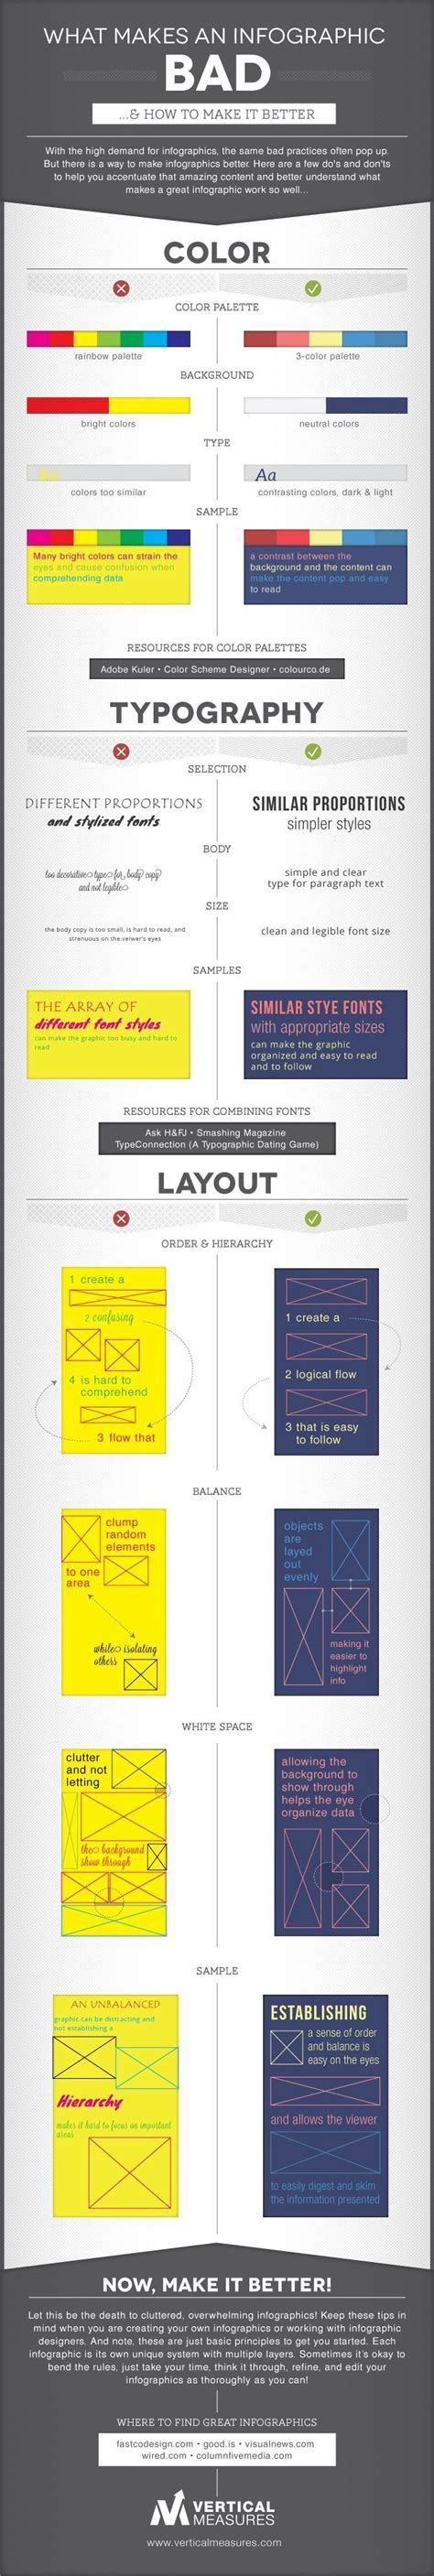 infographics how to print better what makes an infographic bad and how to make it better creative graphics and make an